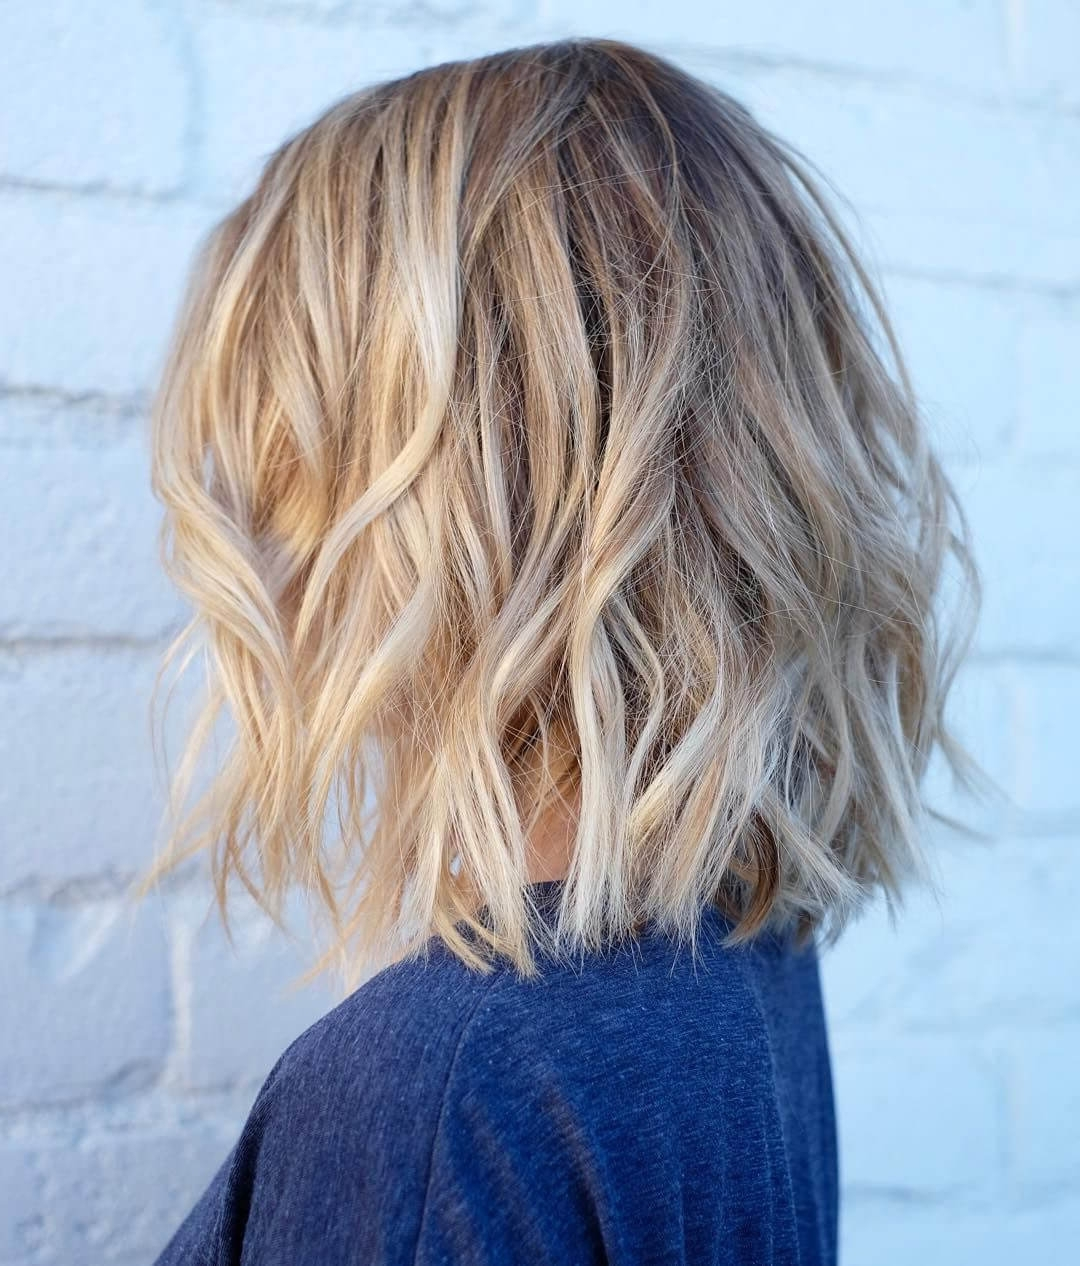 50 Fresh Short Blonde Hair Ideas To Update Your Style In 2018 Throughout Well Known Gently Angled Waves Blonde Hairstyles (View 5 of 20)